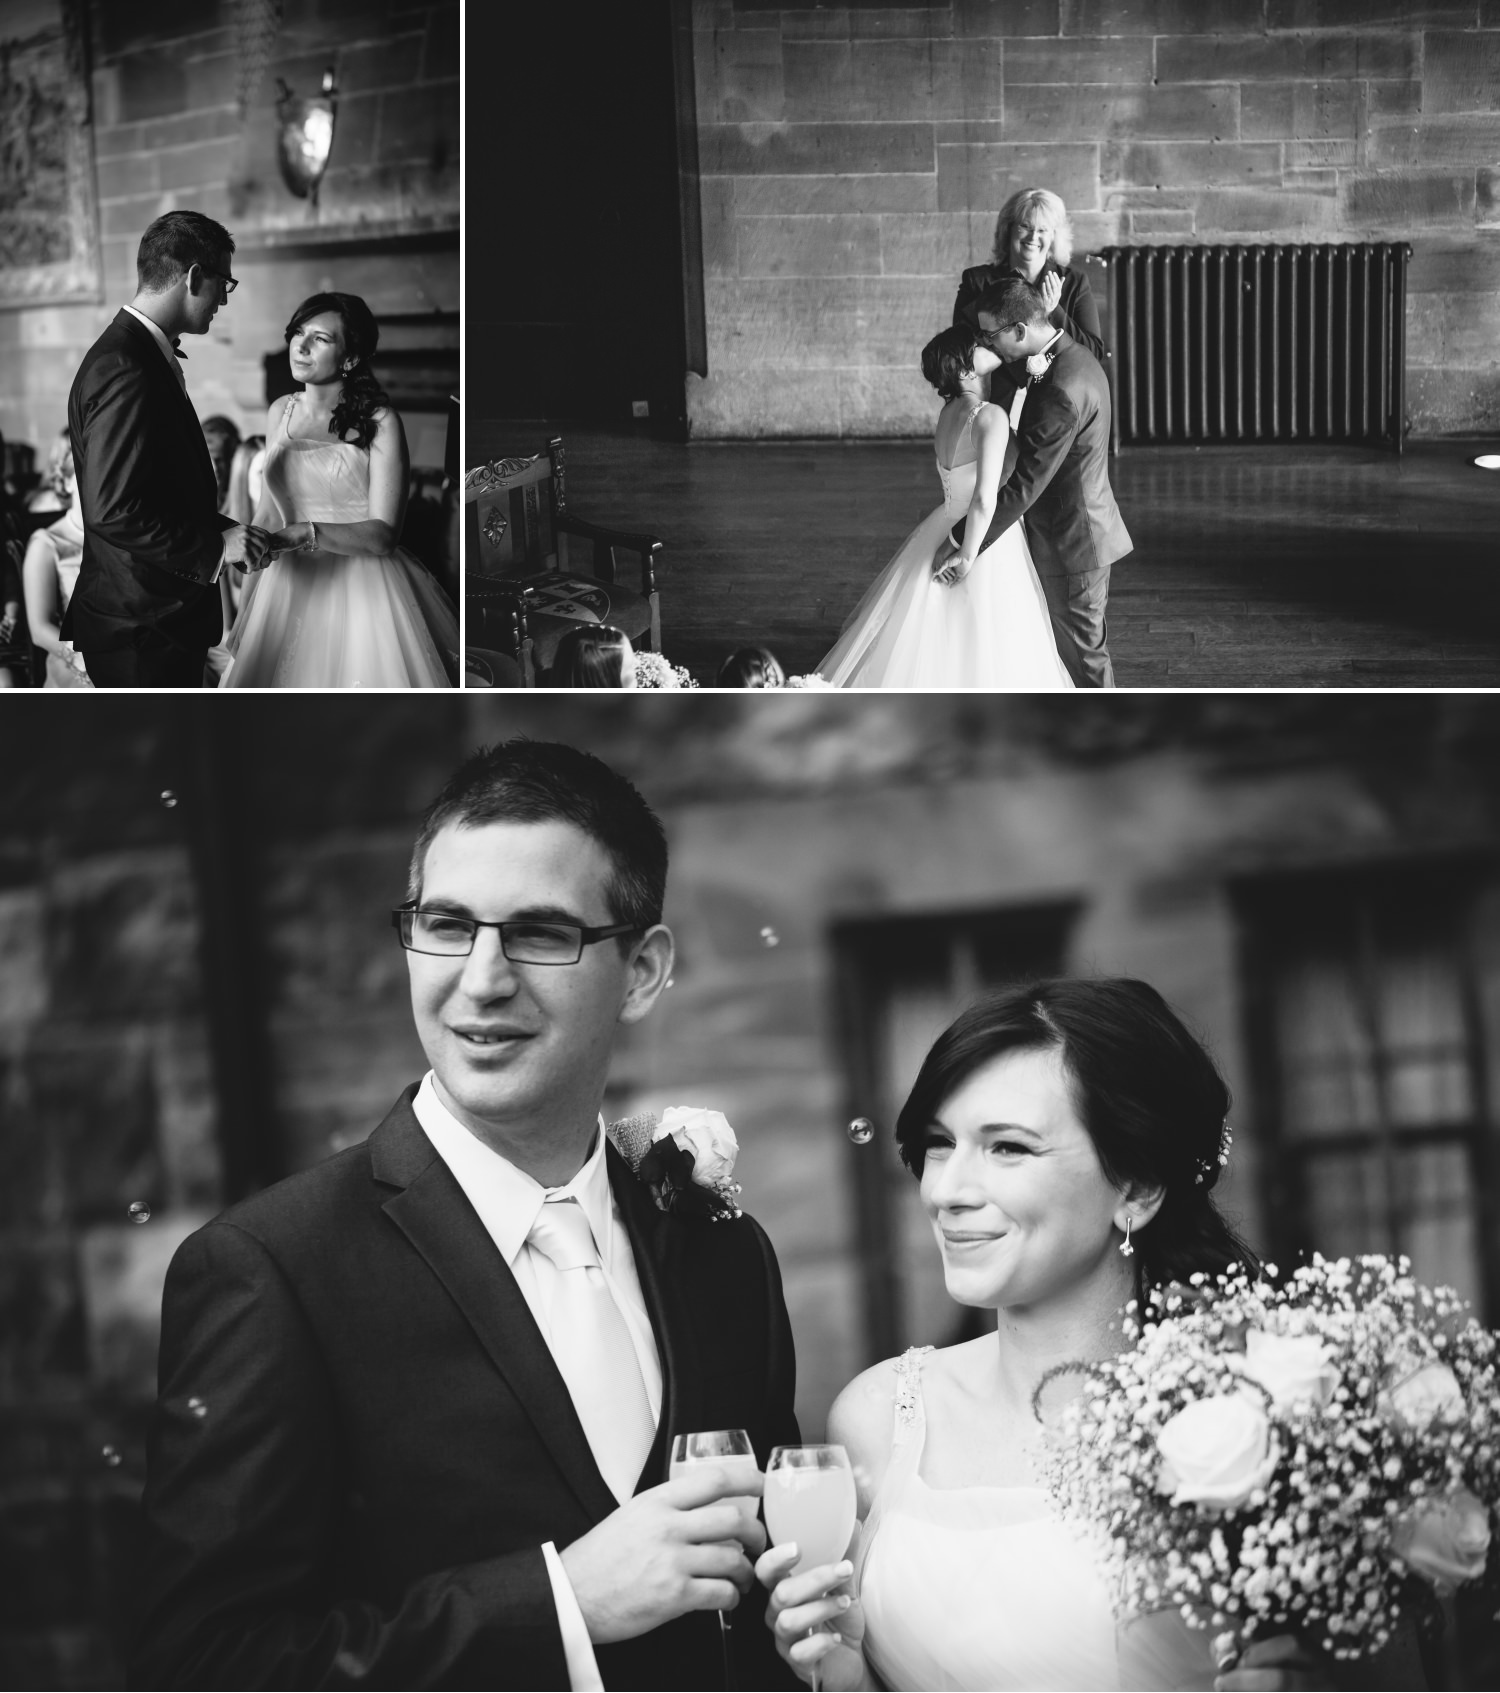 Black and White photographs of the wedding ceremony at Peckforton Castle, Chester